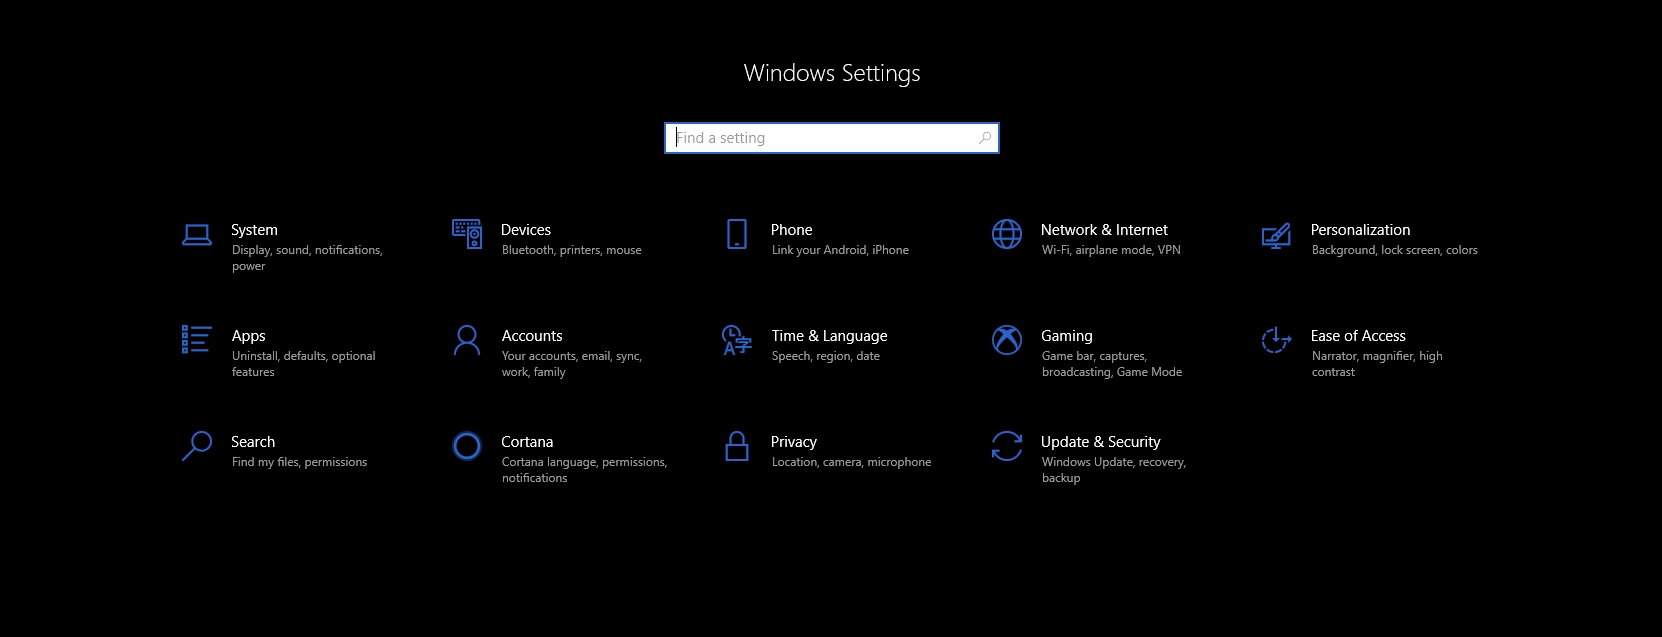 How to fix a Corrupted User Profile in Windows 10